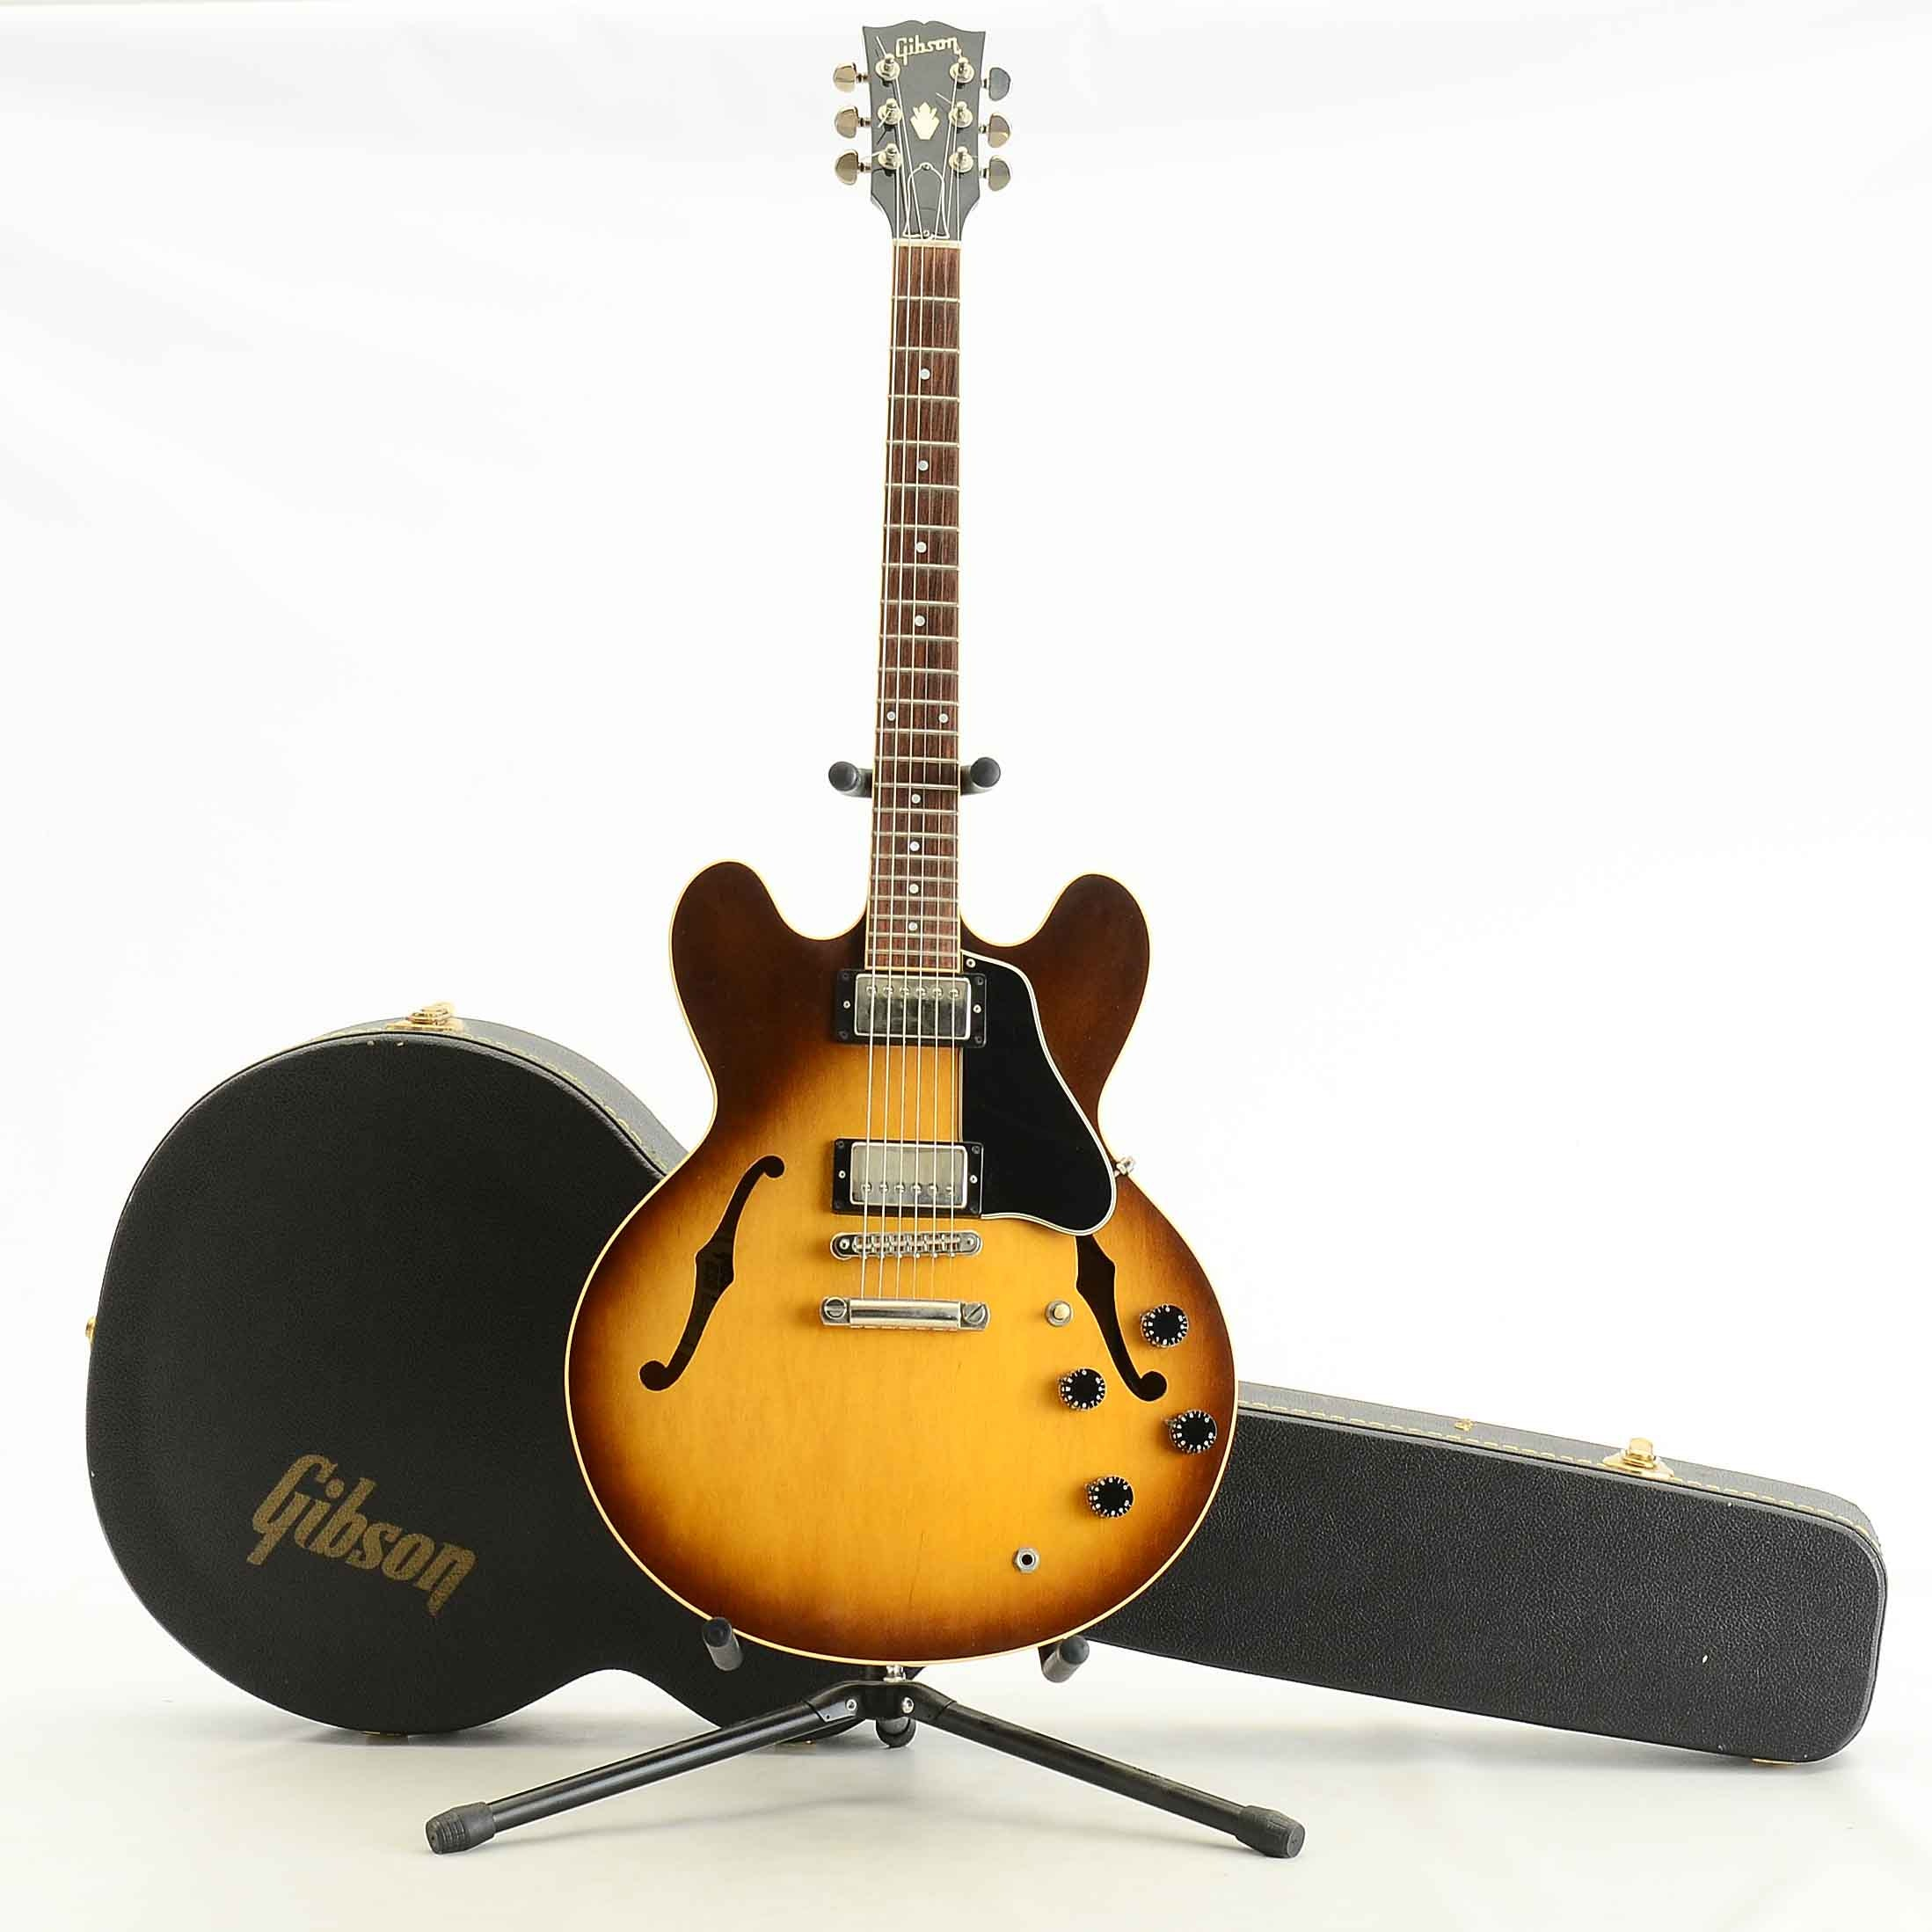 1987 Gibson ES335 Dot Electric Guitar with Case